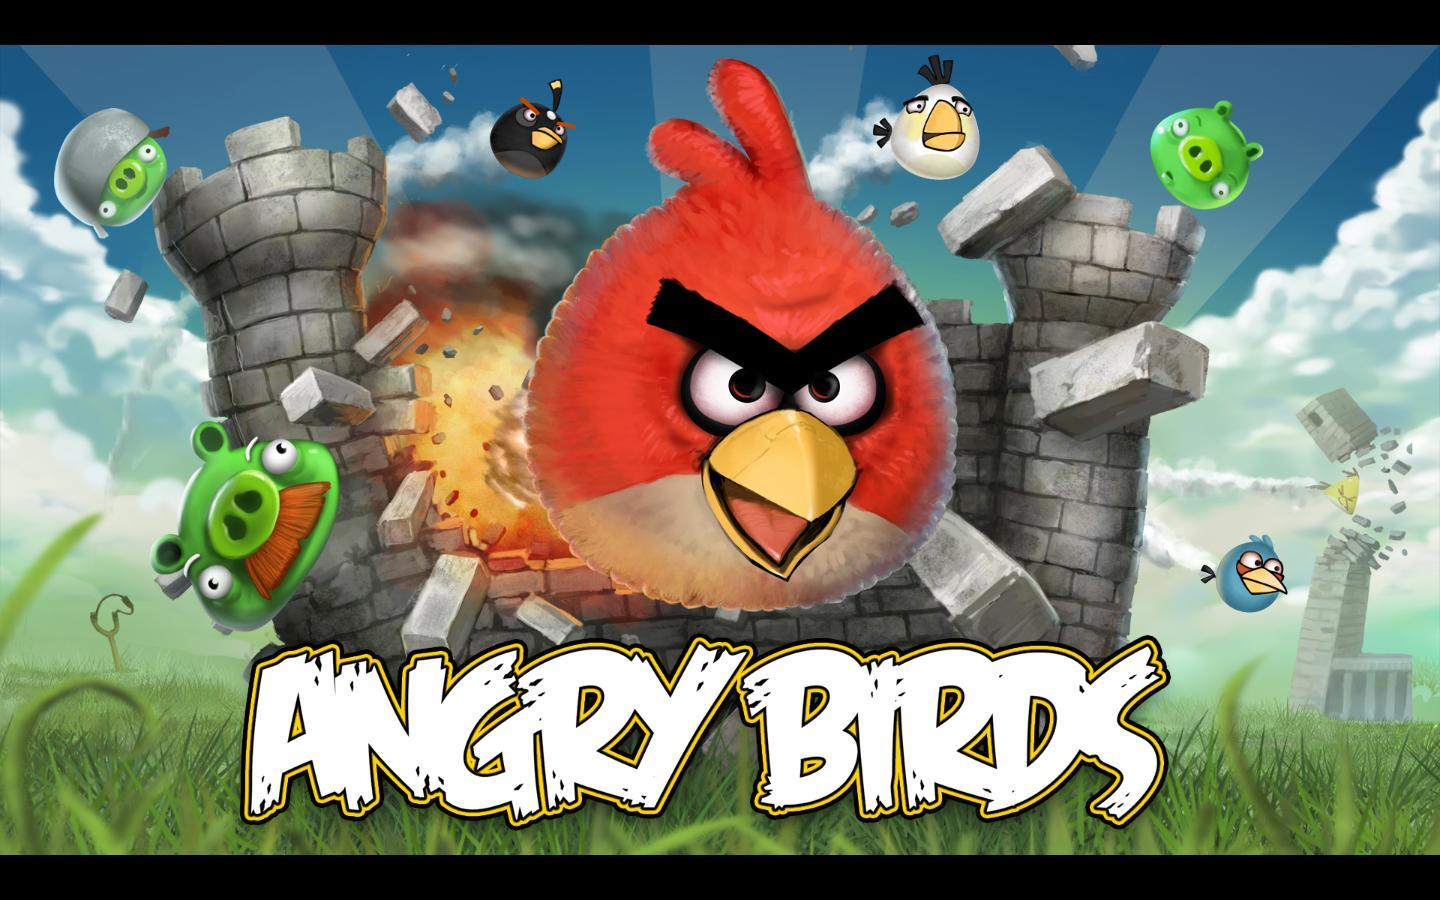 Angry Birds Live!